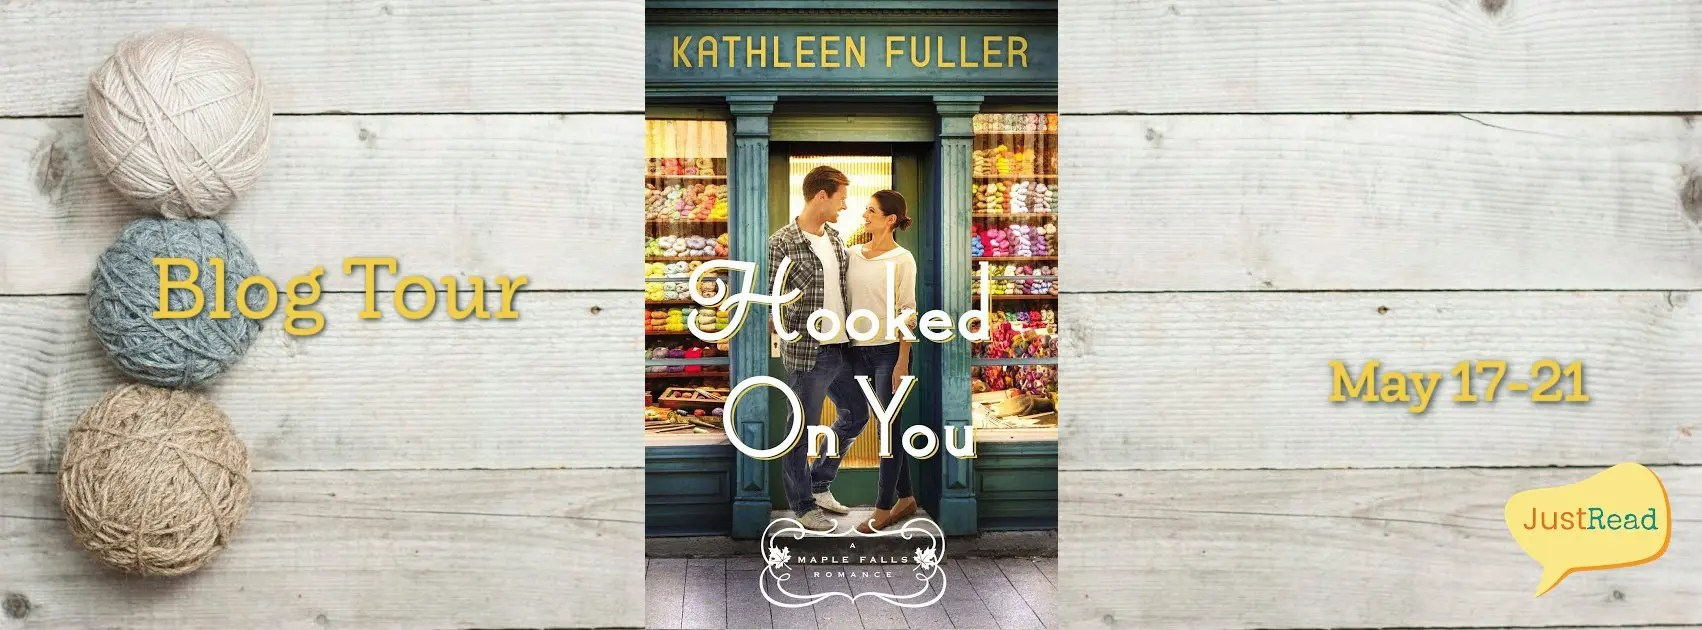 Welcome to the Hooked On You Blog Tour & Giveaway!